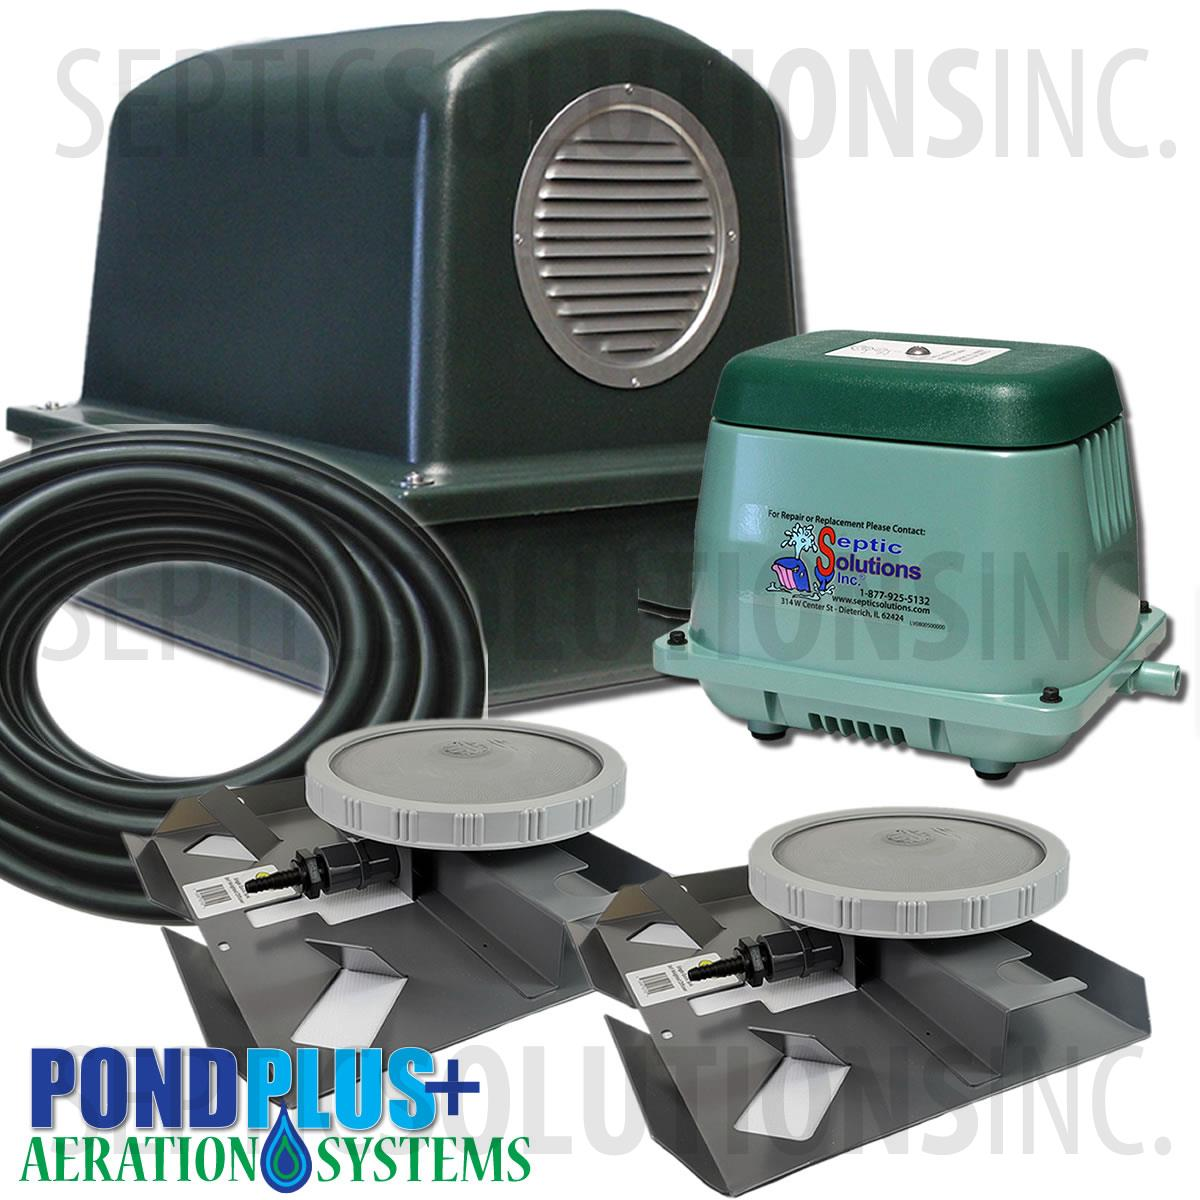 Pondair p o2 1202 small pond aeration system for Best pond pump for small pond